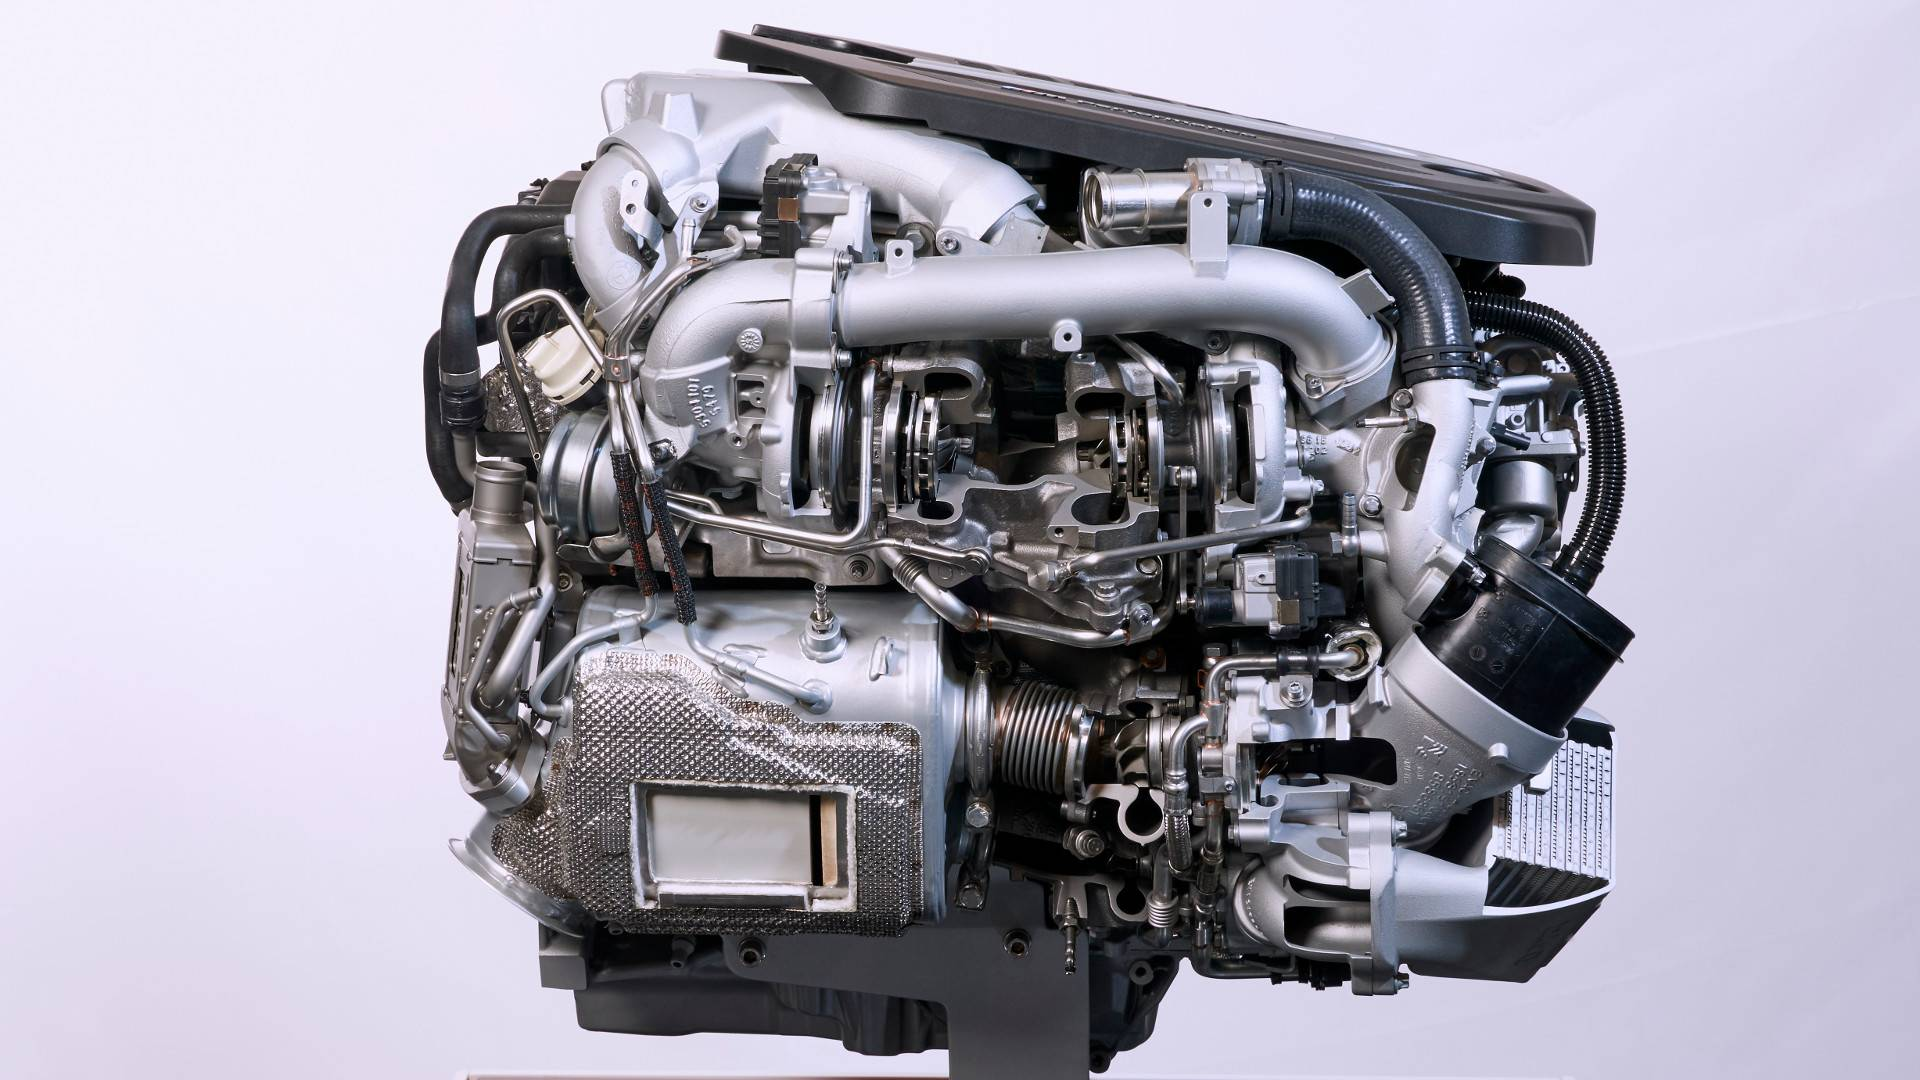 Experts Believe Sales Of Combustion Engine Cars Peaked In 2018